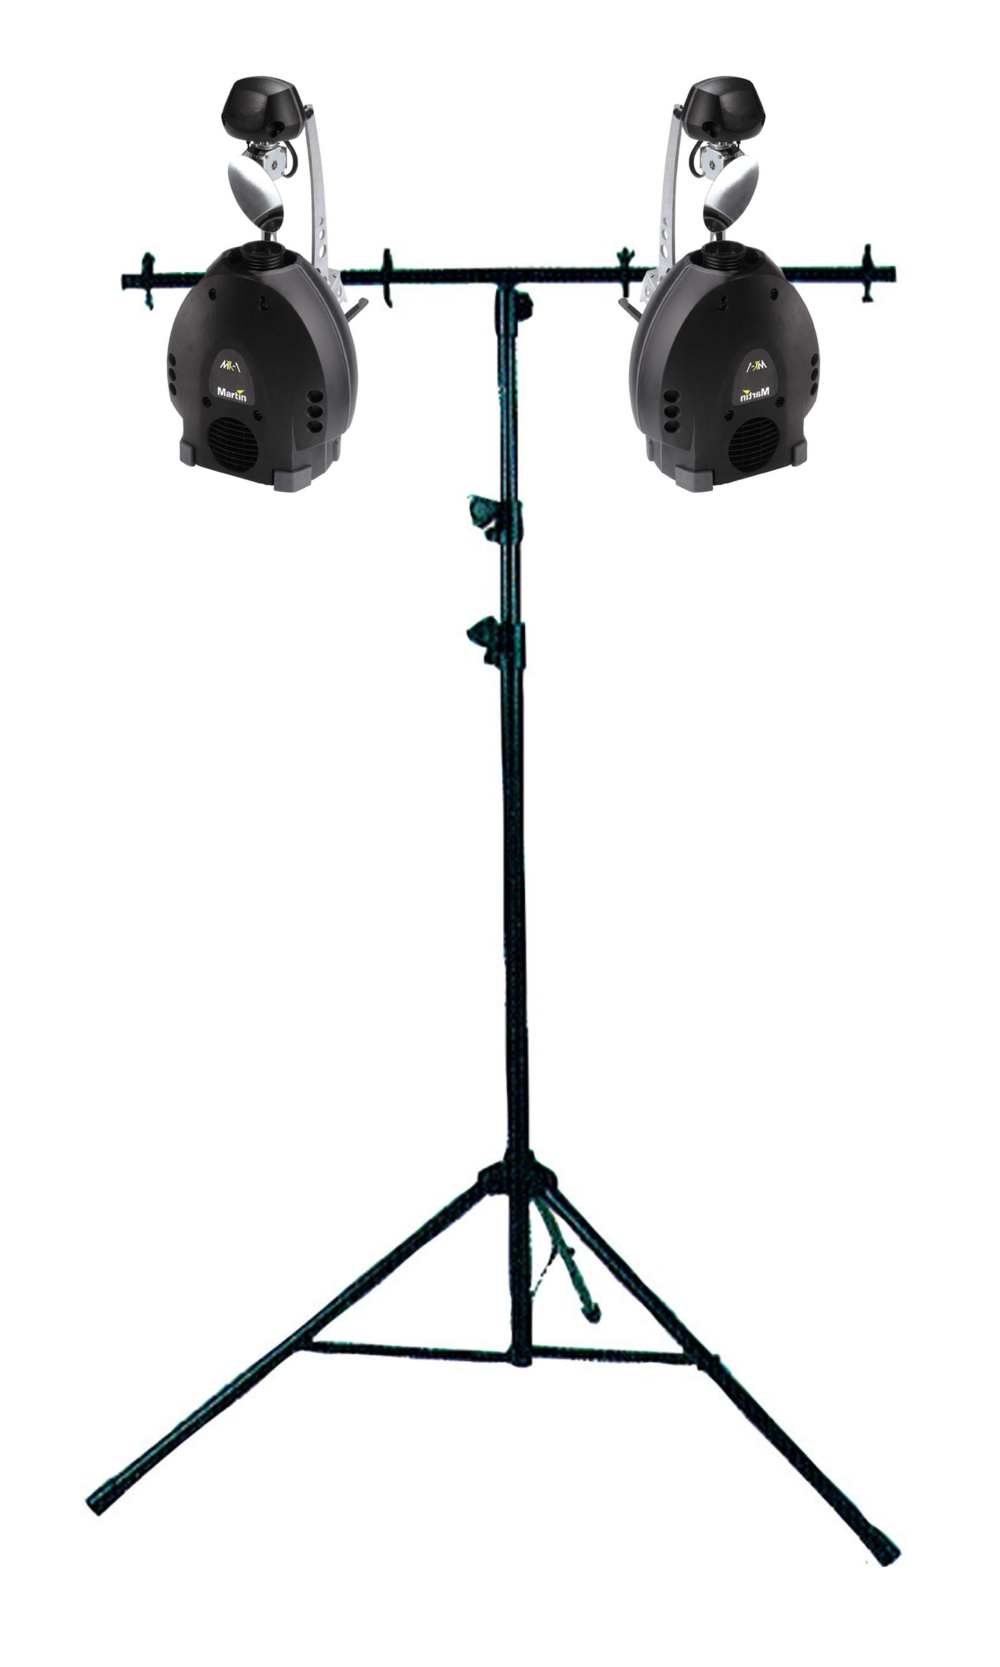 2X MARTIN MX-1        ON A T-STAND   $80